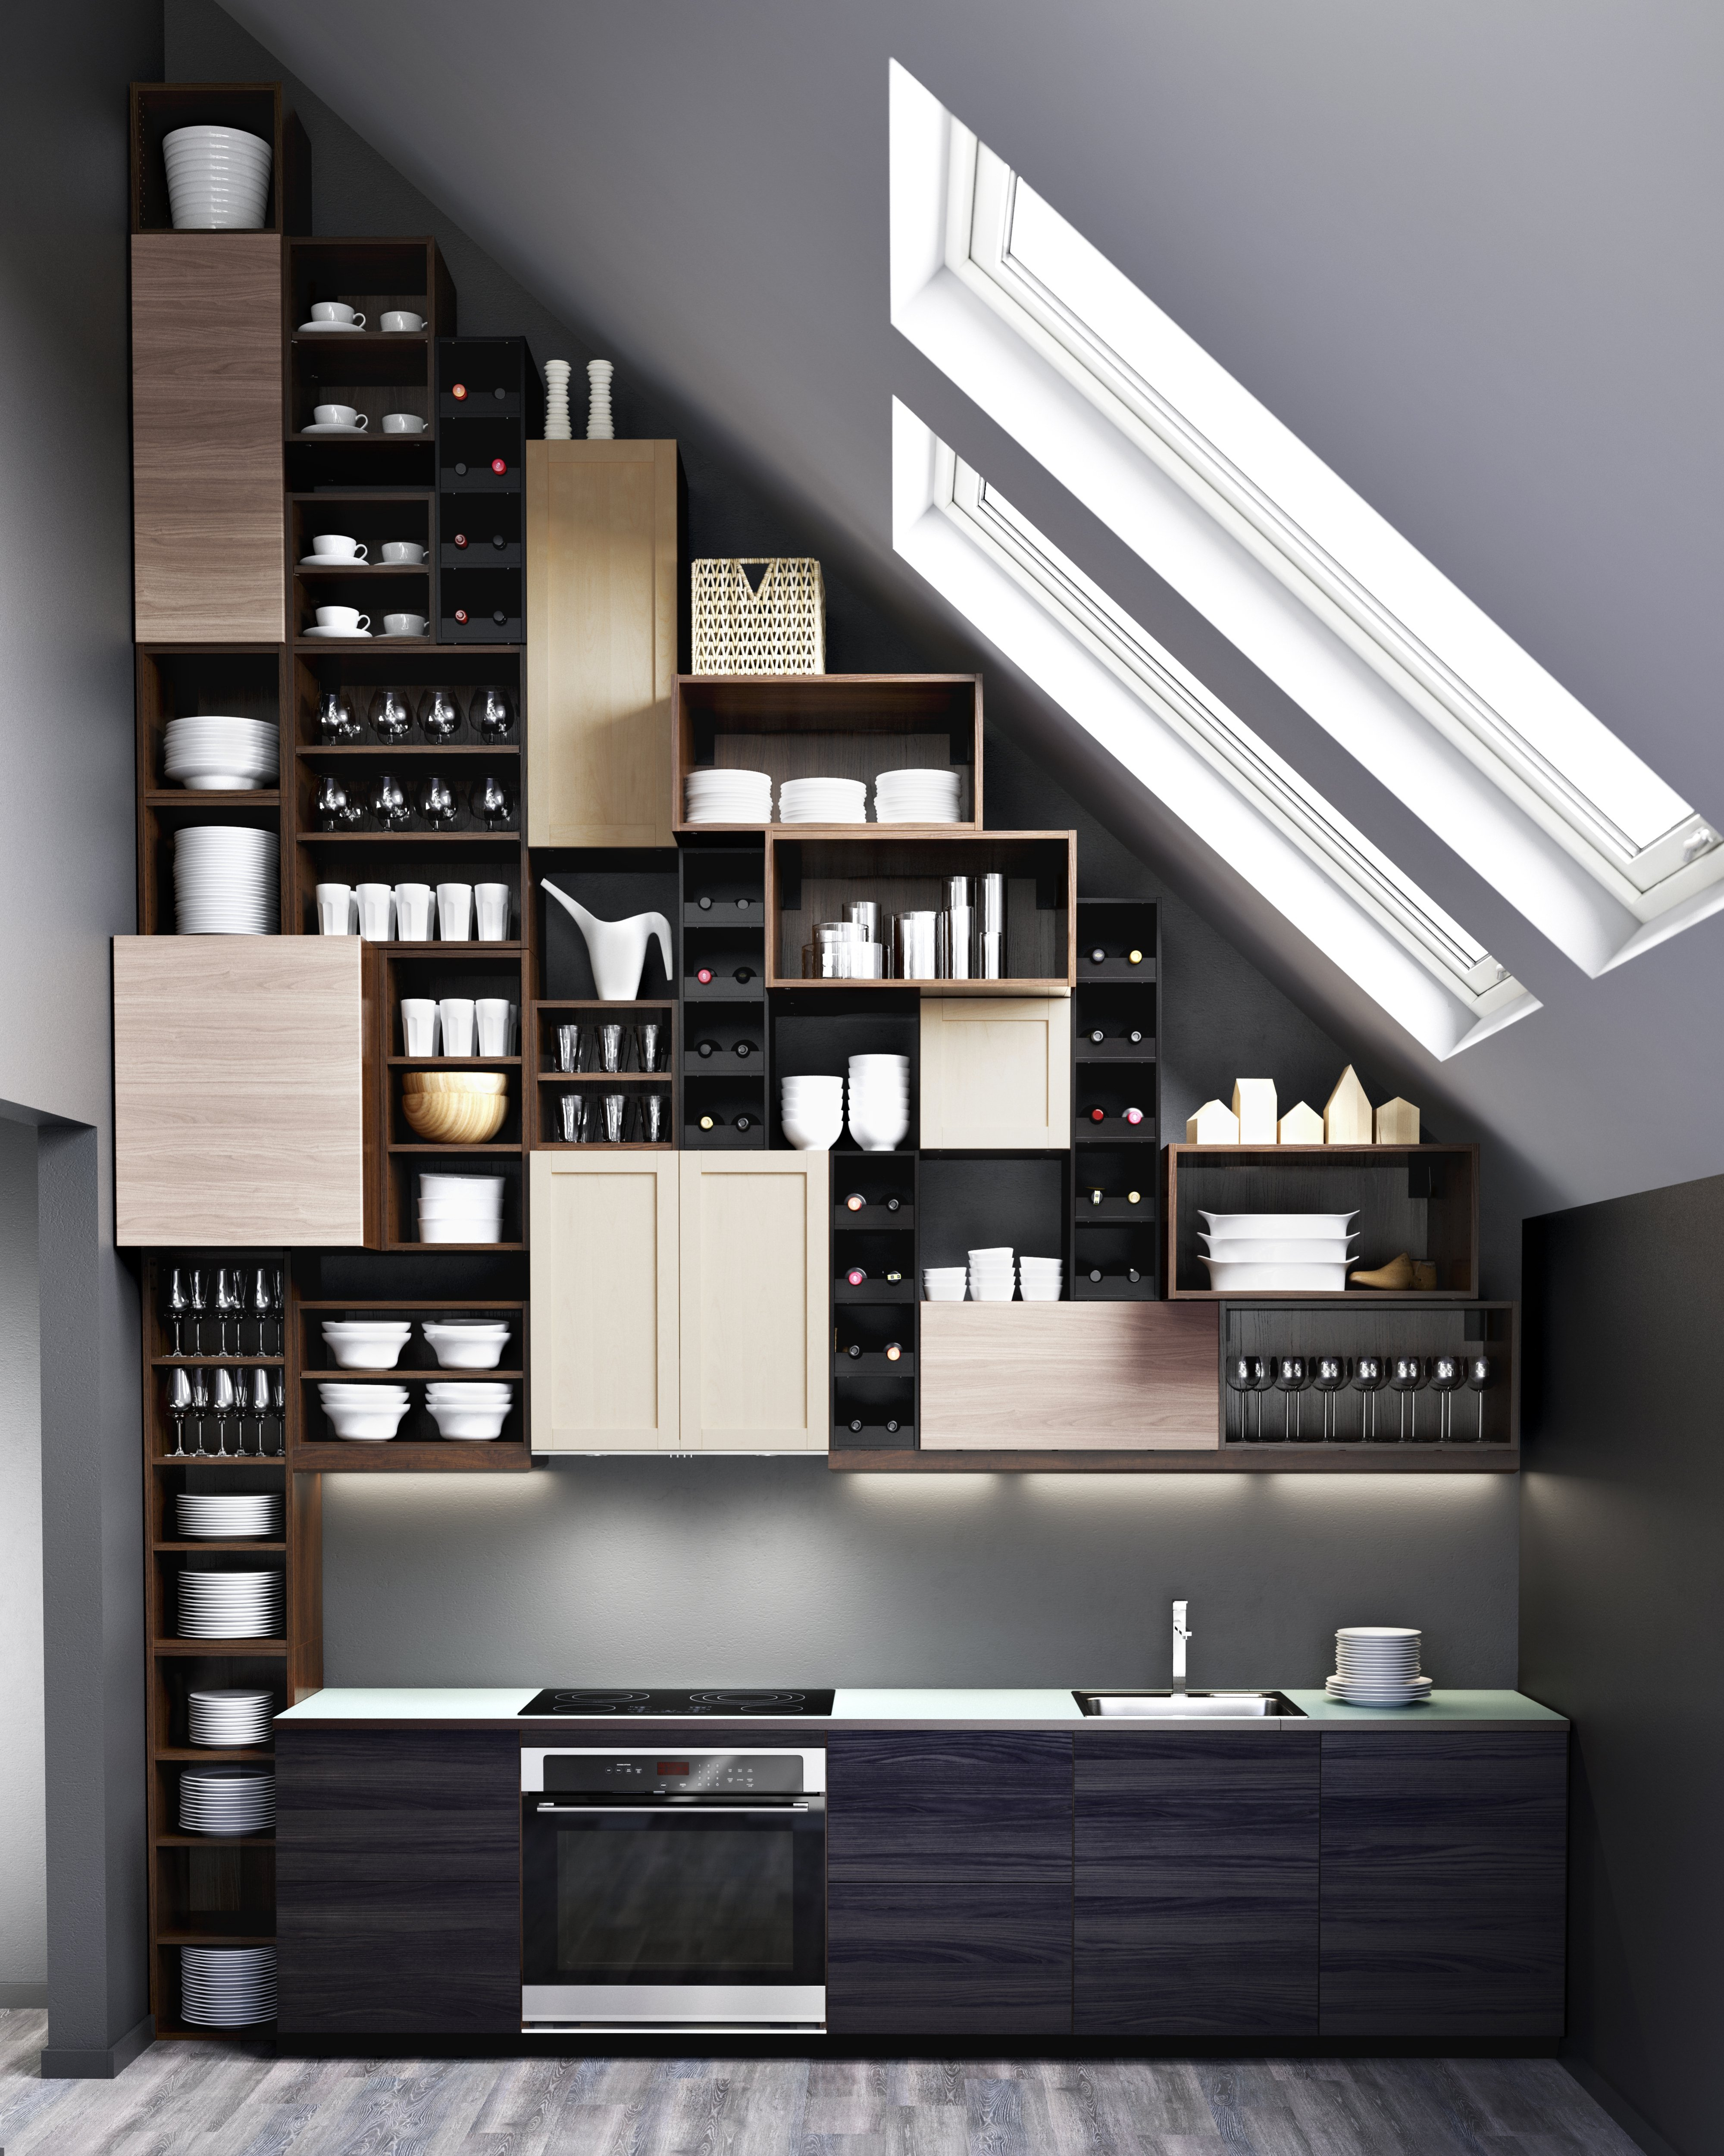 Charmant IKEA SEKTION New Kitchen Cabinet Guide: Photos, Prices, Sizes And More!